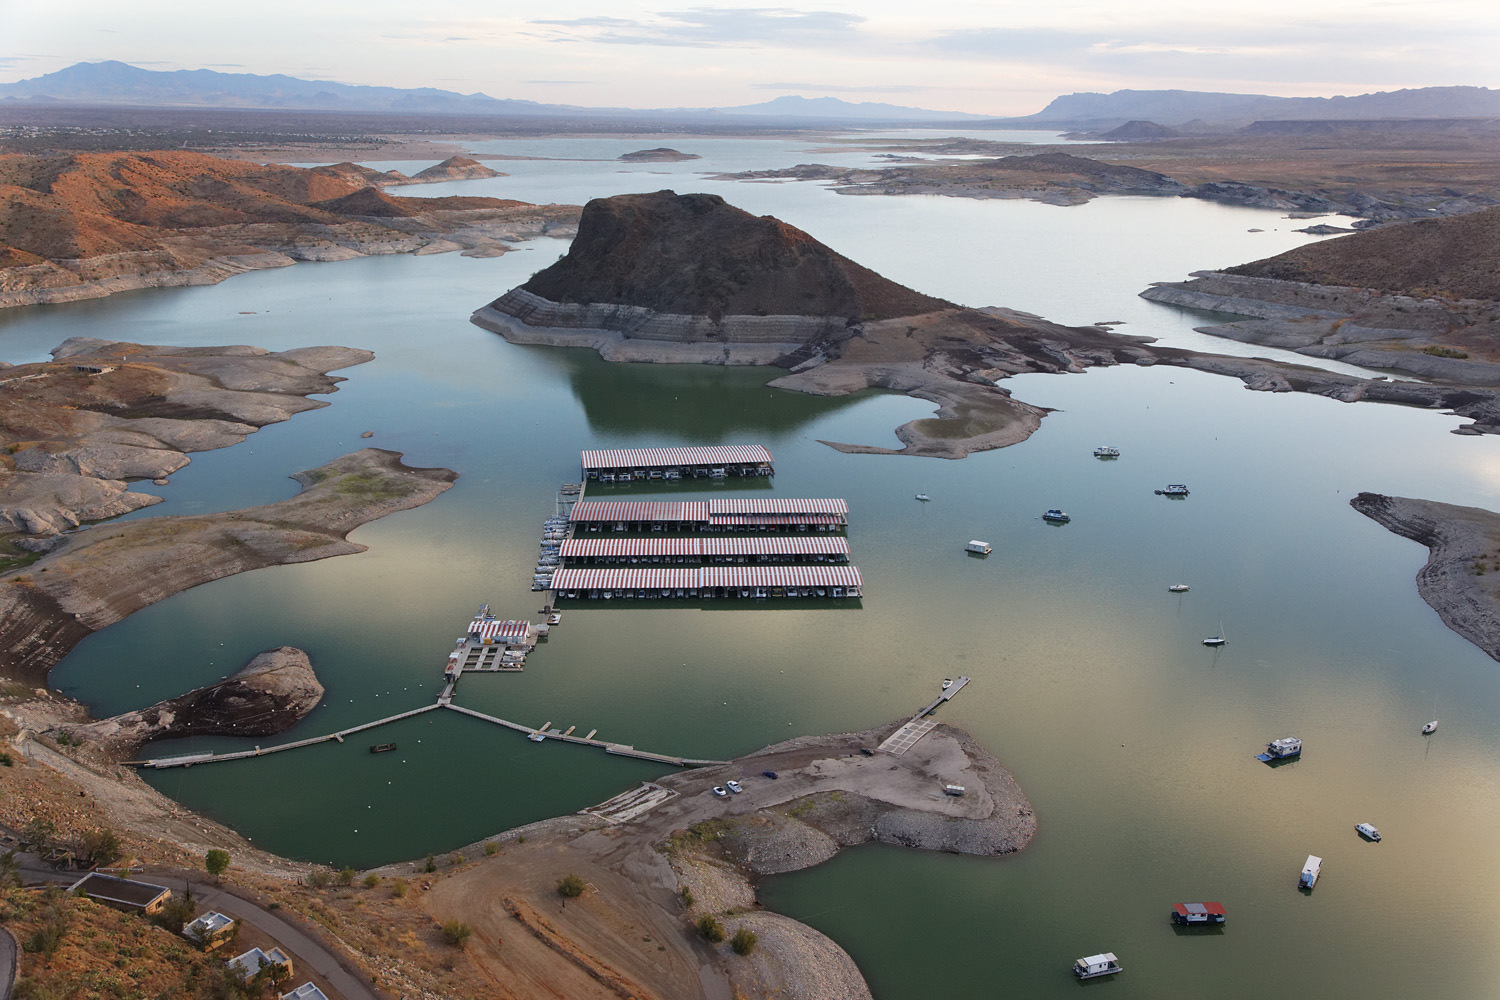 August 3, 2011. Water levels in New Mexico's Elephant Butte Reservoir in the Rio Grande Valley, whcih are at extreme lows.